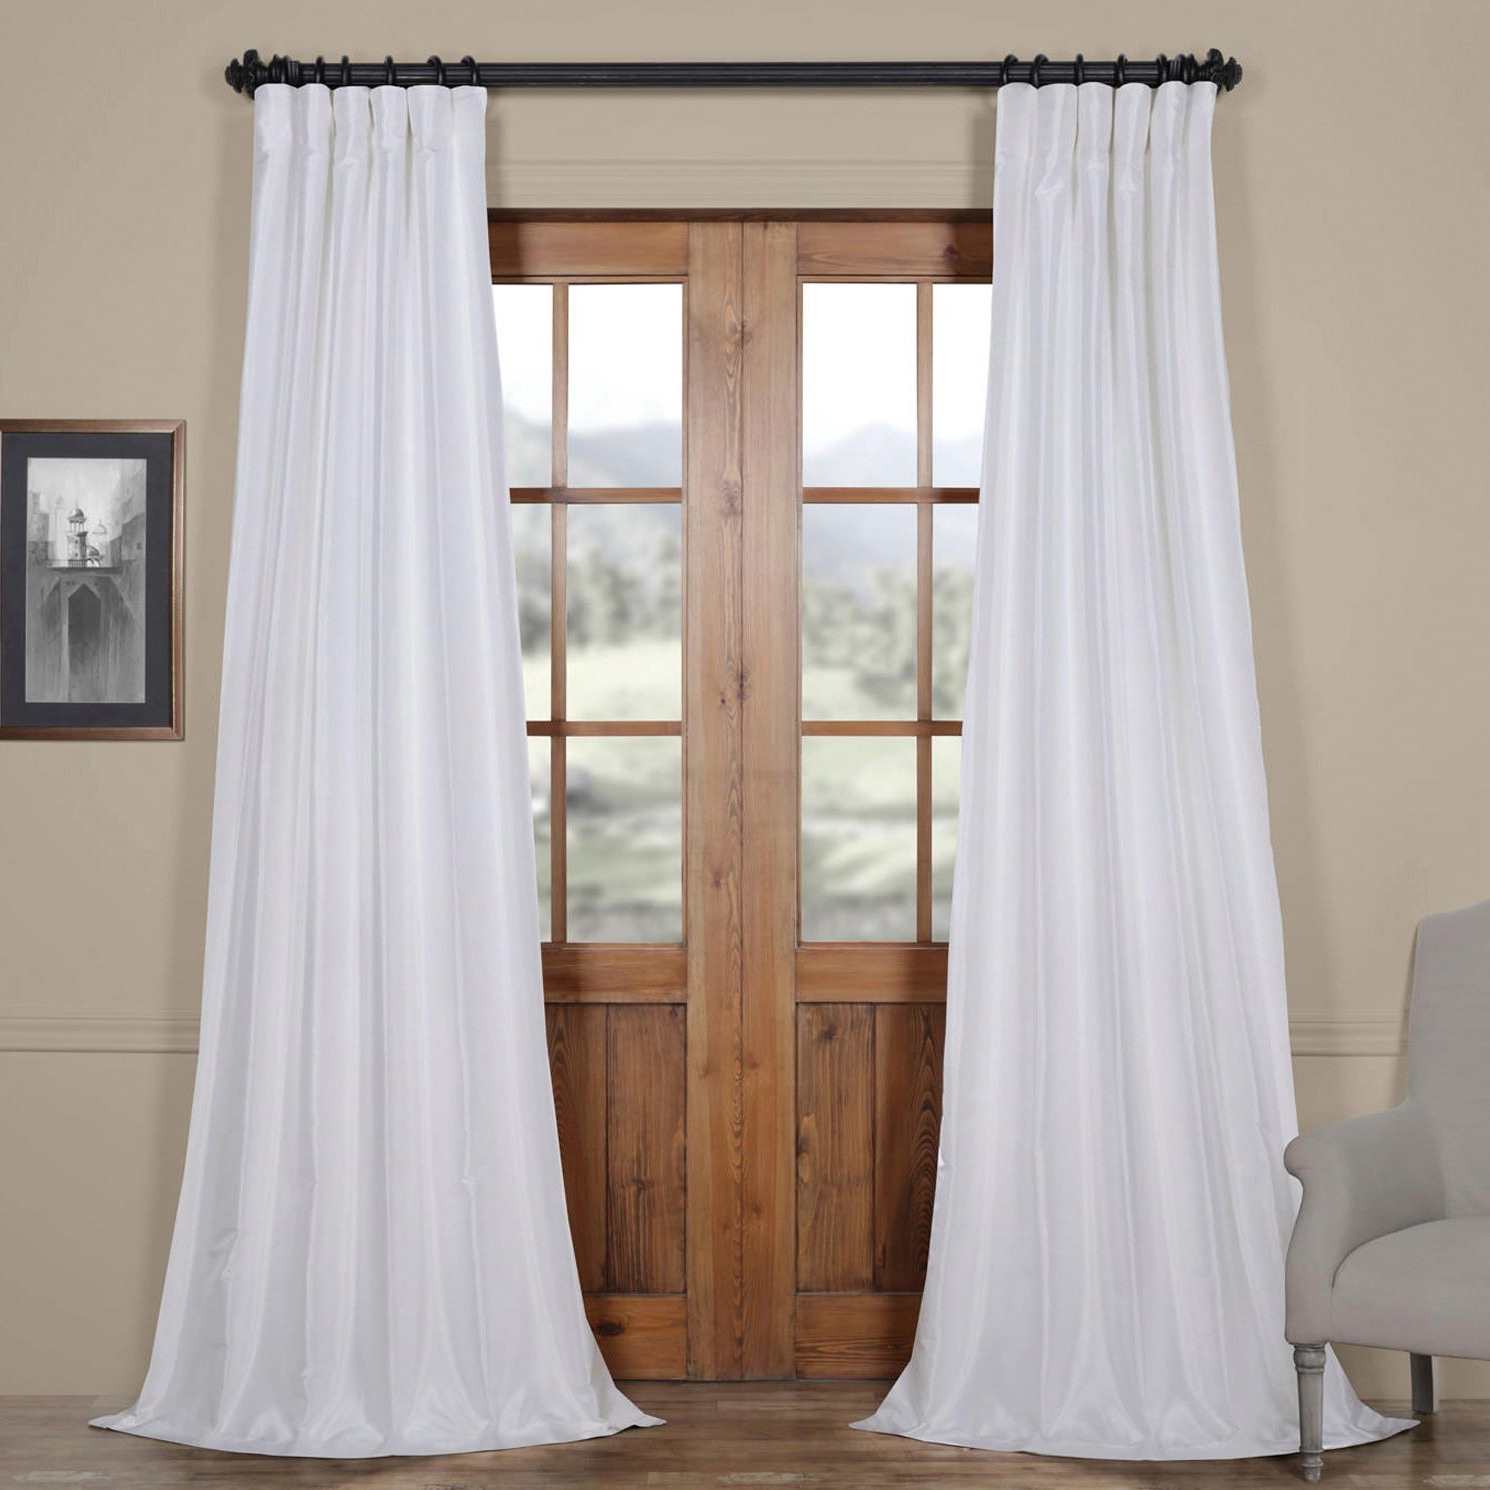 Newest Ice White Vintage Faux Textured Dupioni Silk 108L Curtain Panel Regarding Storm Grey Vintage Faux Textured Dupioni Single Silk Curtain Panels (View 10 of 20)